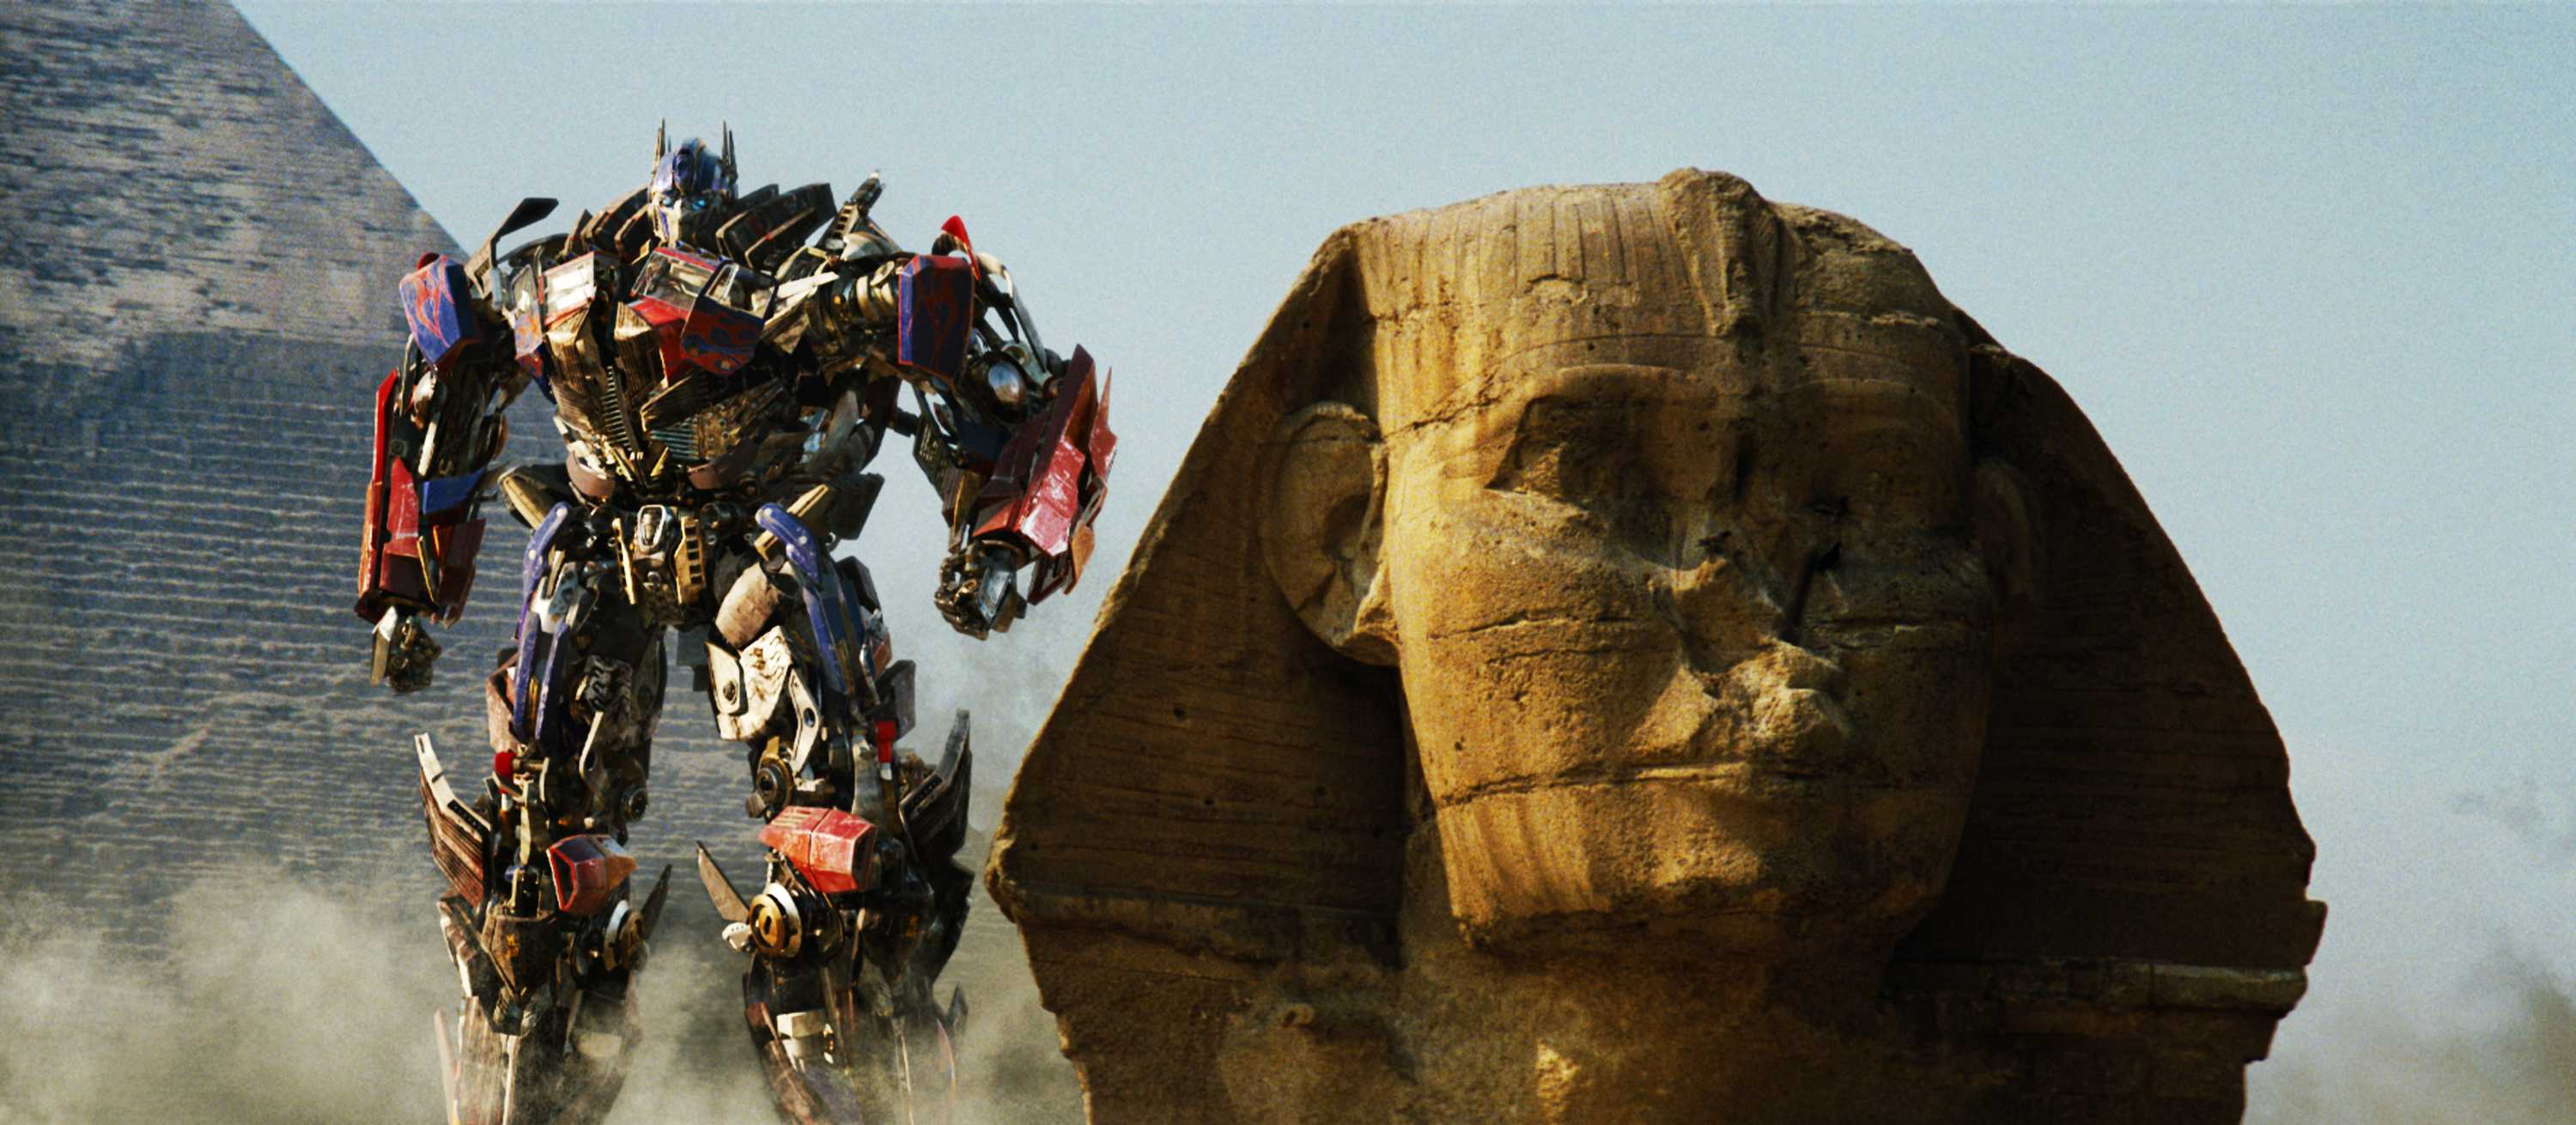 Optimus Prime beside the Sphinx in Transformers: Revenge of the Fallen (2009)